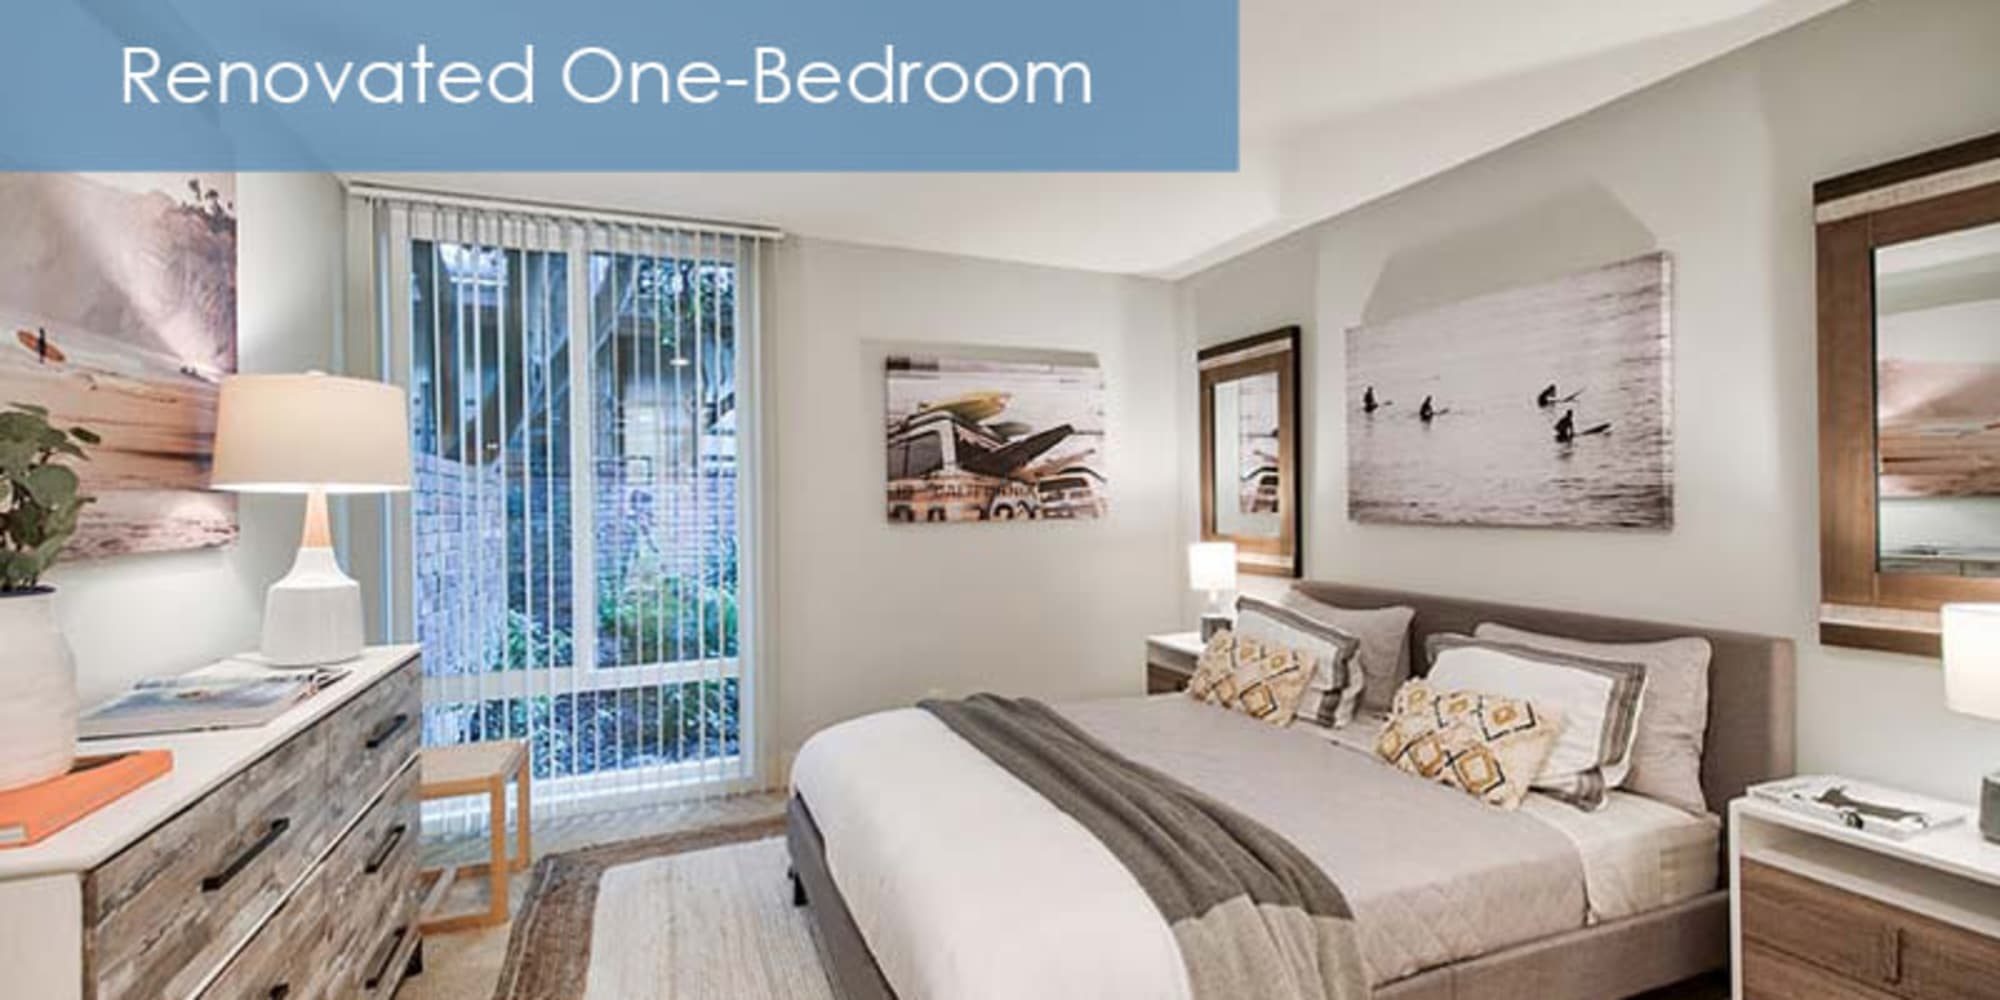 renovated bedroom with a large window at The Meadows in Culver City, California